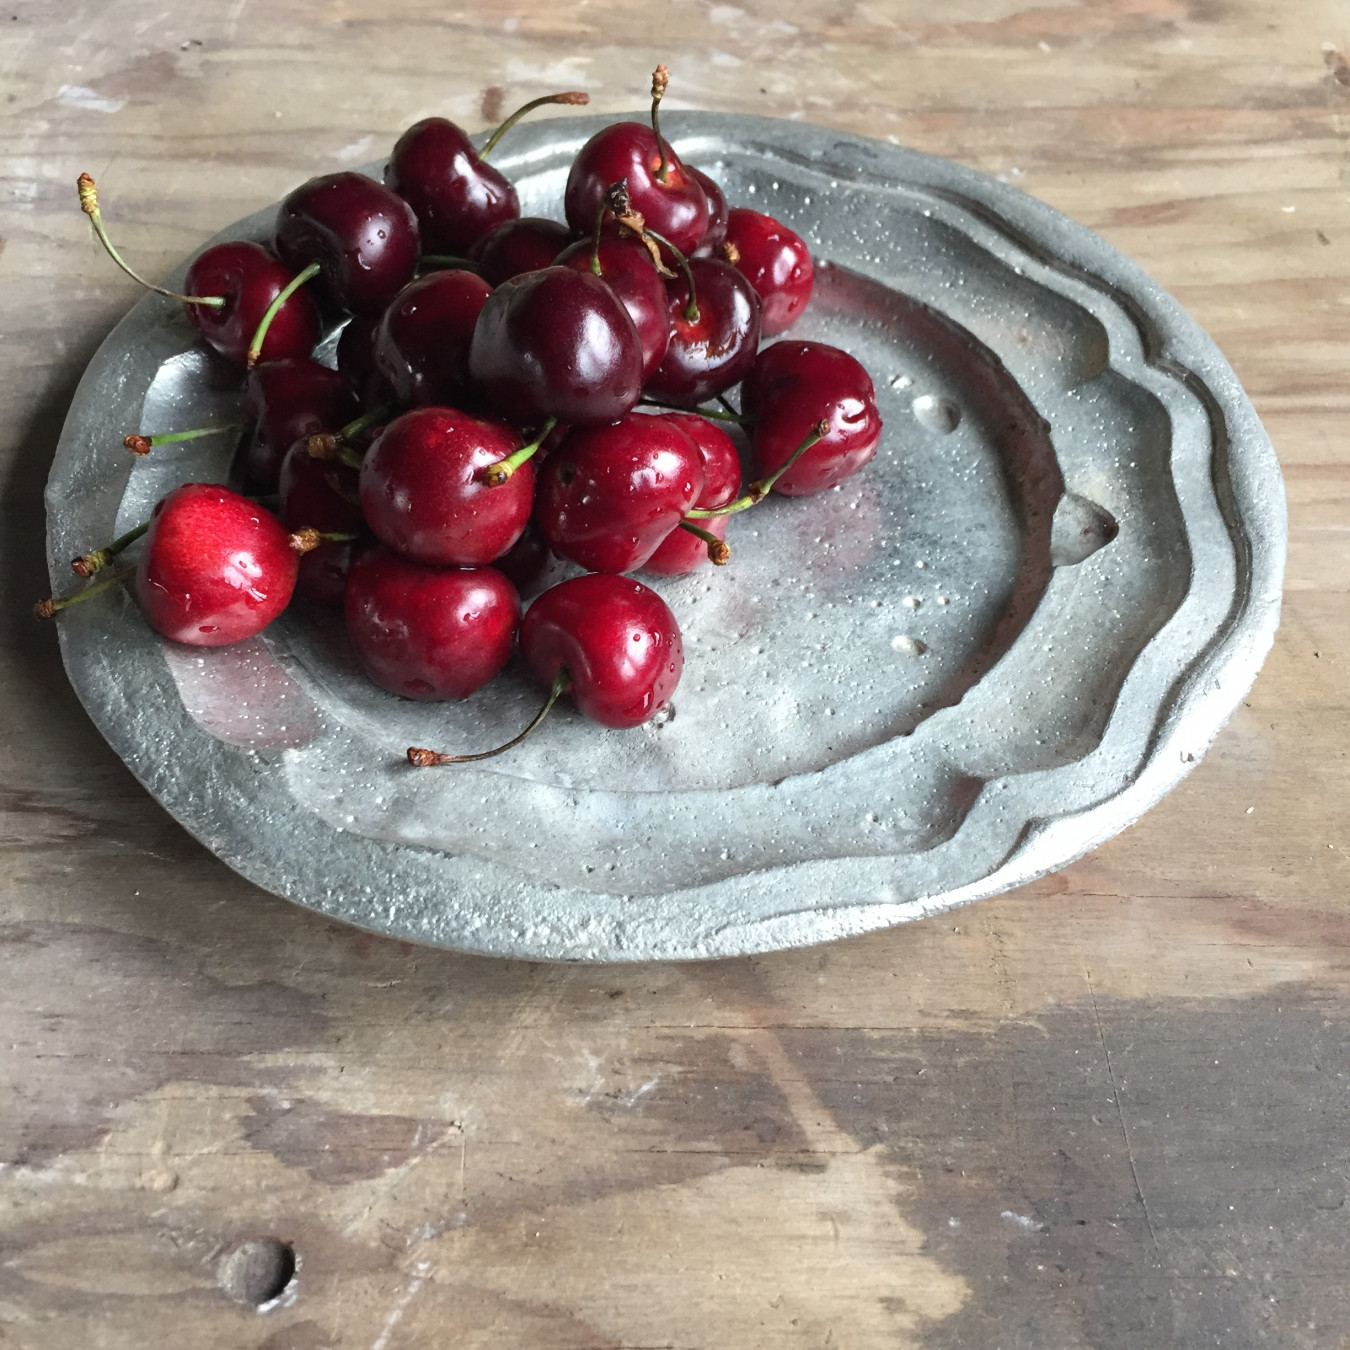 Image of a pewter plate with fresh cherries.